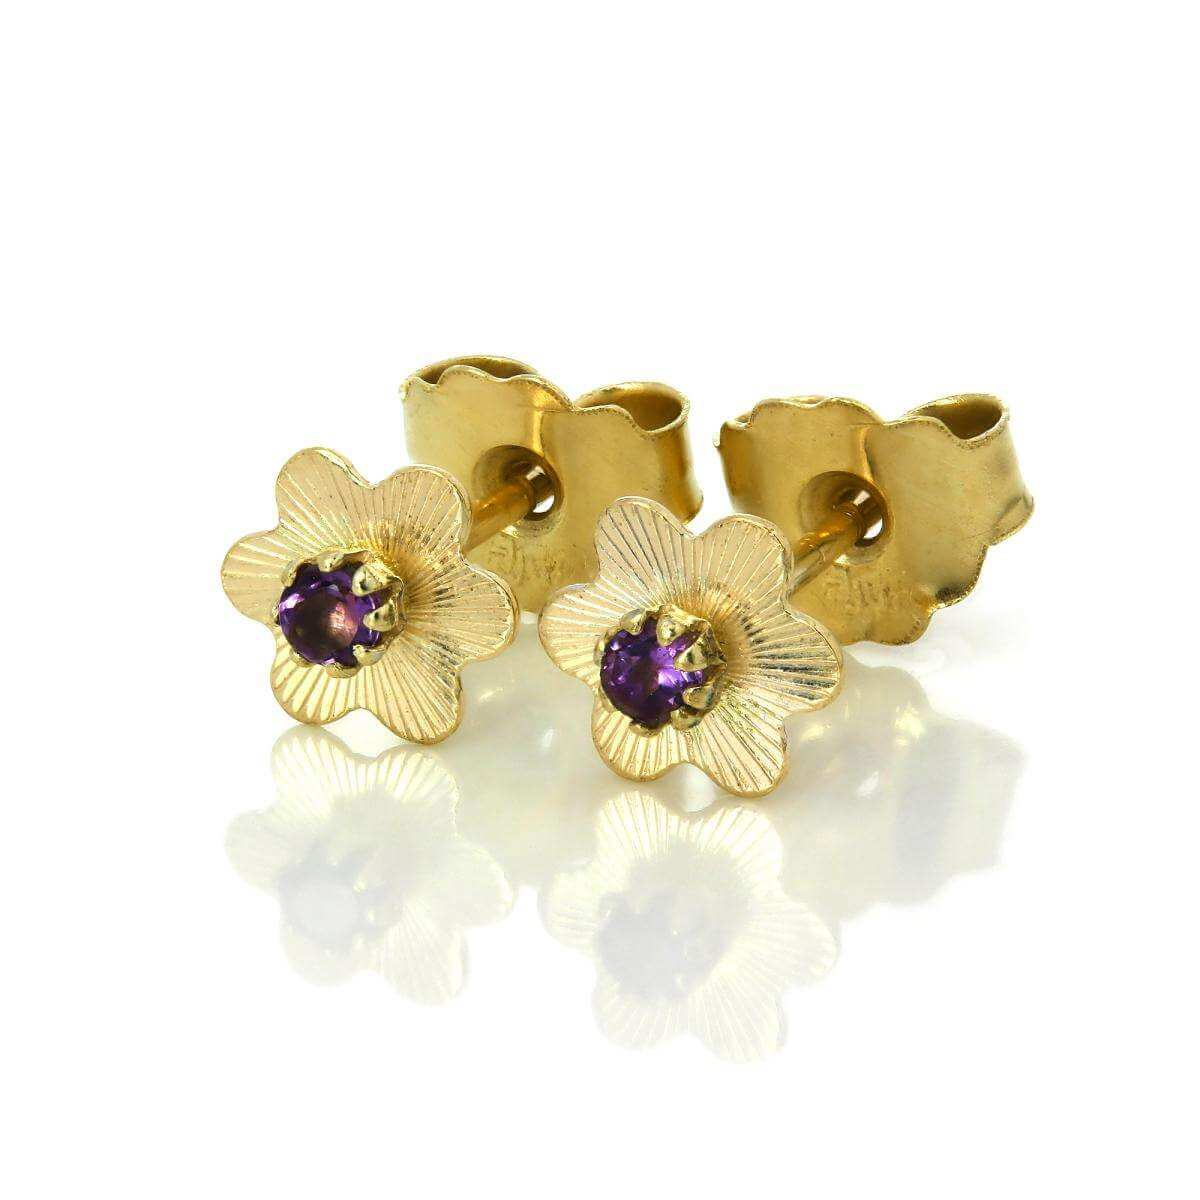 9ct Gold Flower Stud Earrings with 1.5mm Round Gemstones - Amethyst